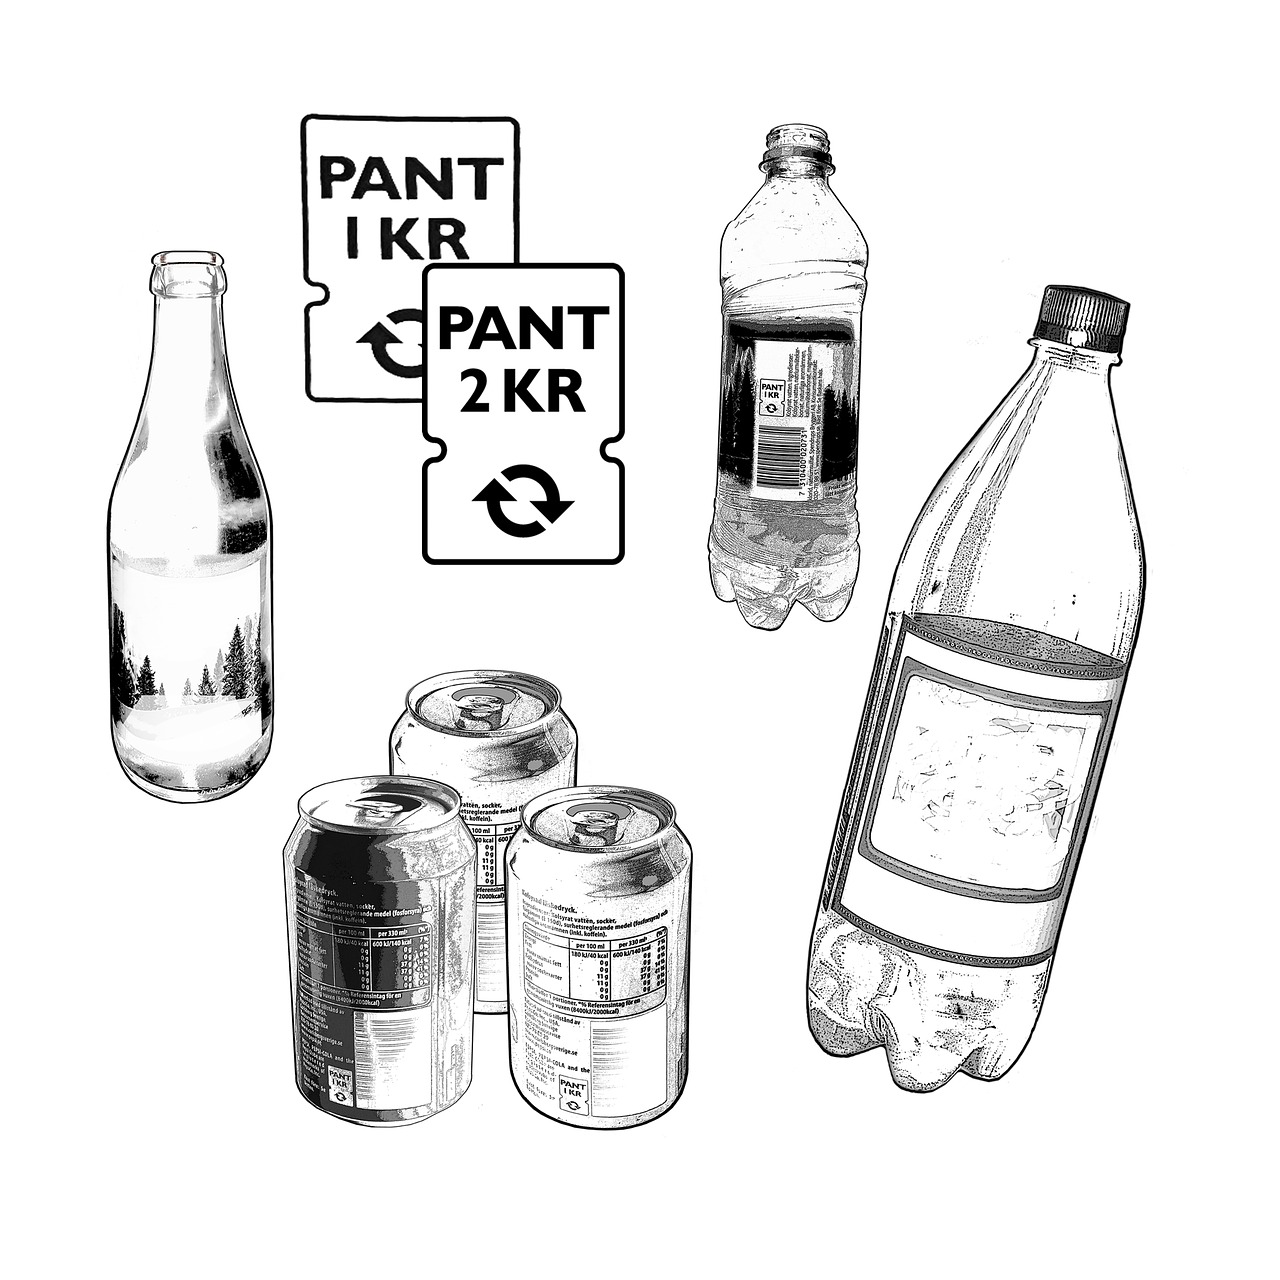 pant,enter,recycling,environmental,source separation,garbage,waste recycling,waste,sustainability,bottle,jar,bottles,pet,free pictures, free photos, free images, royalty free, free illustrations